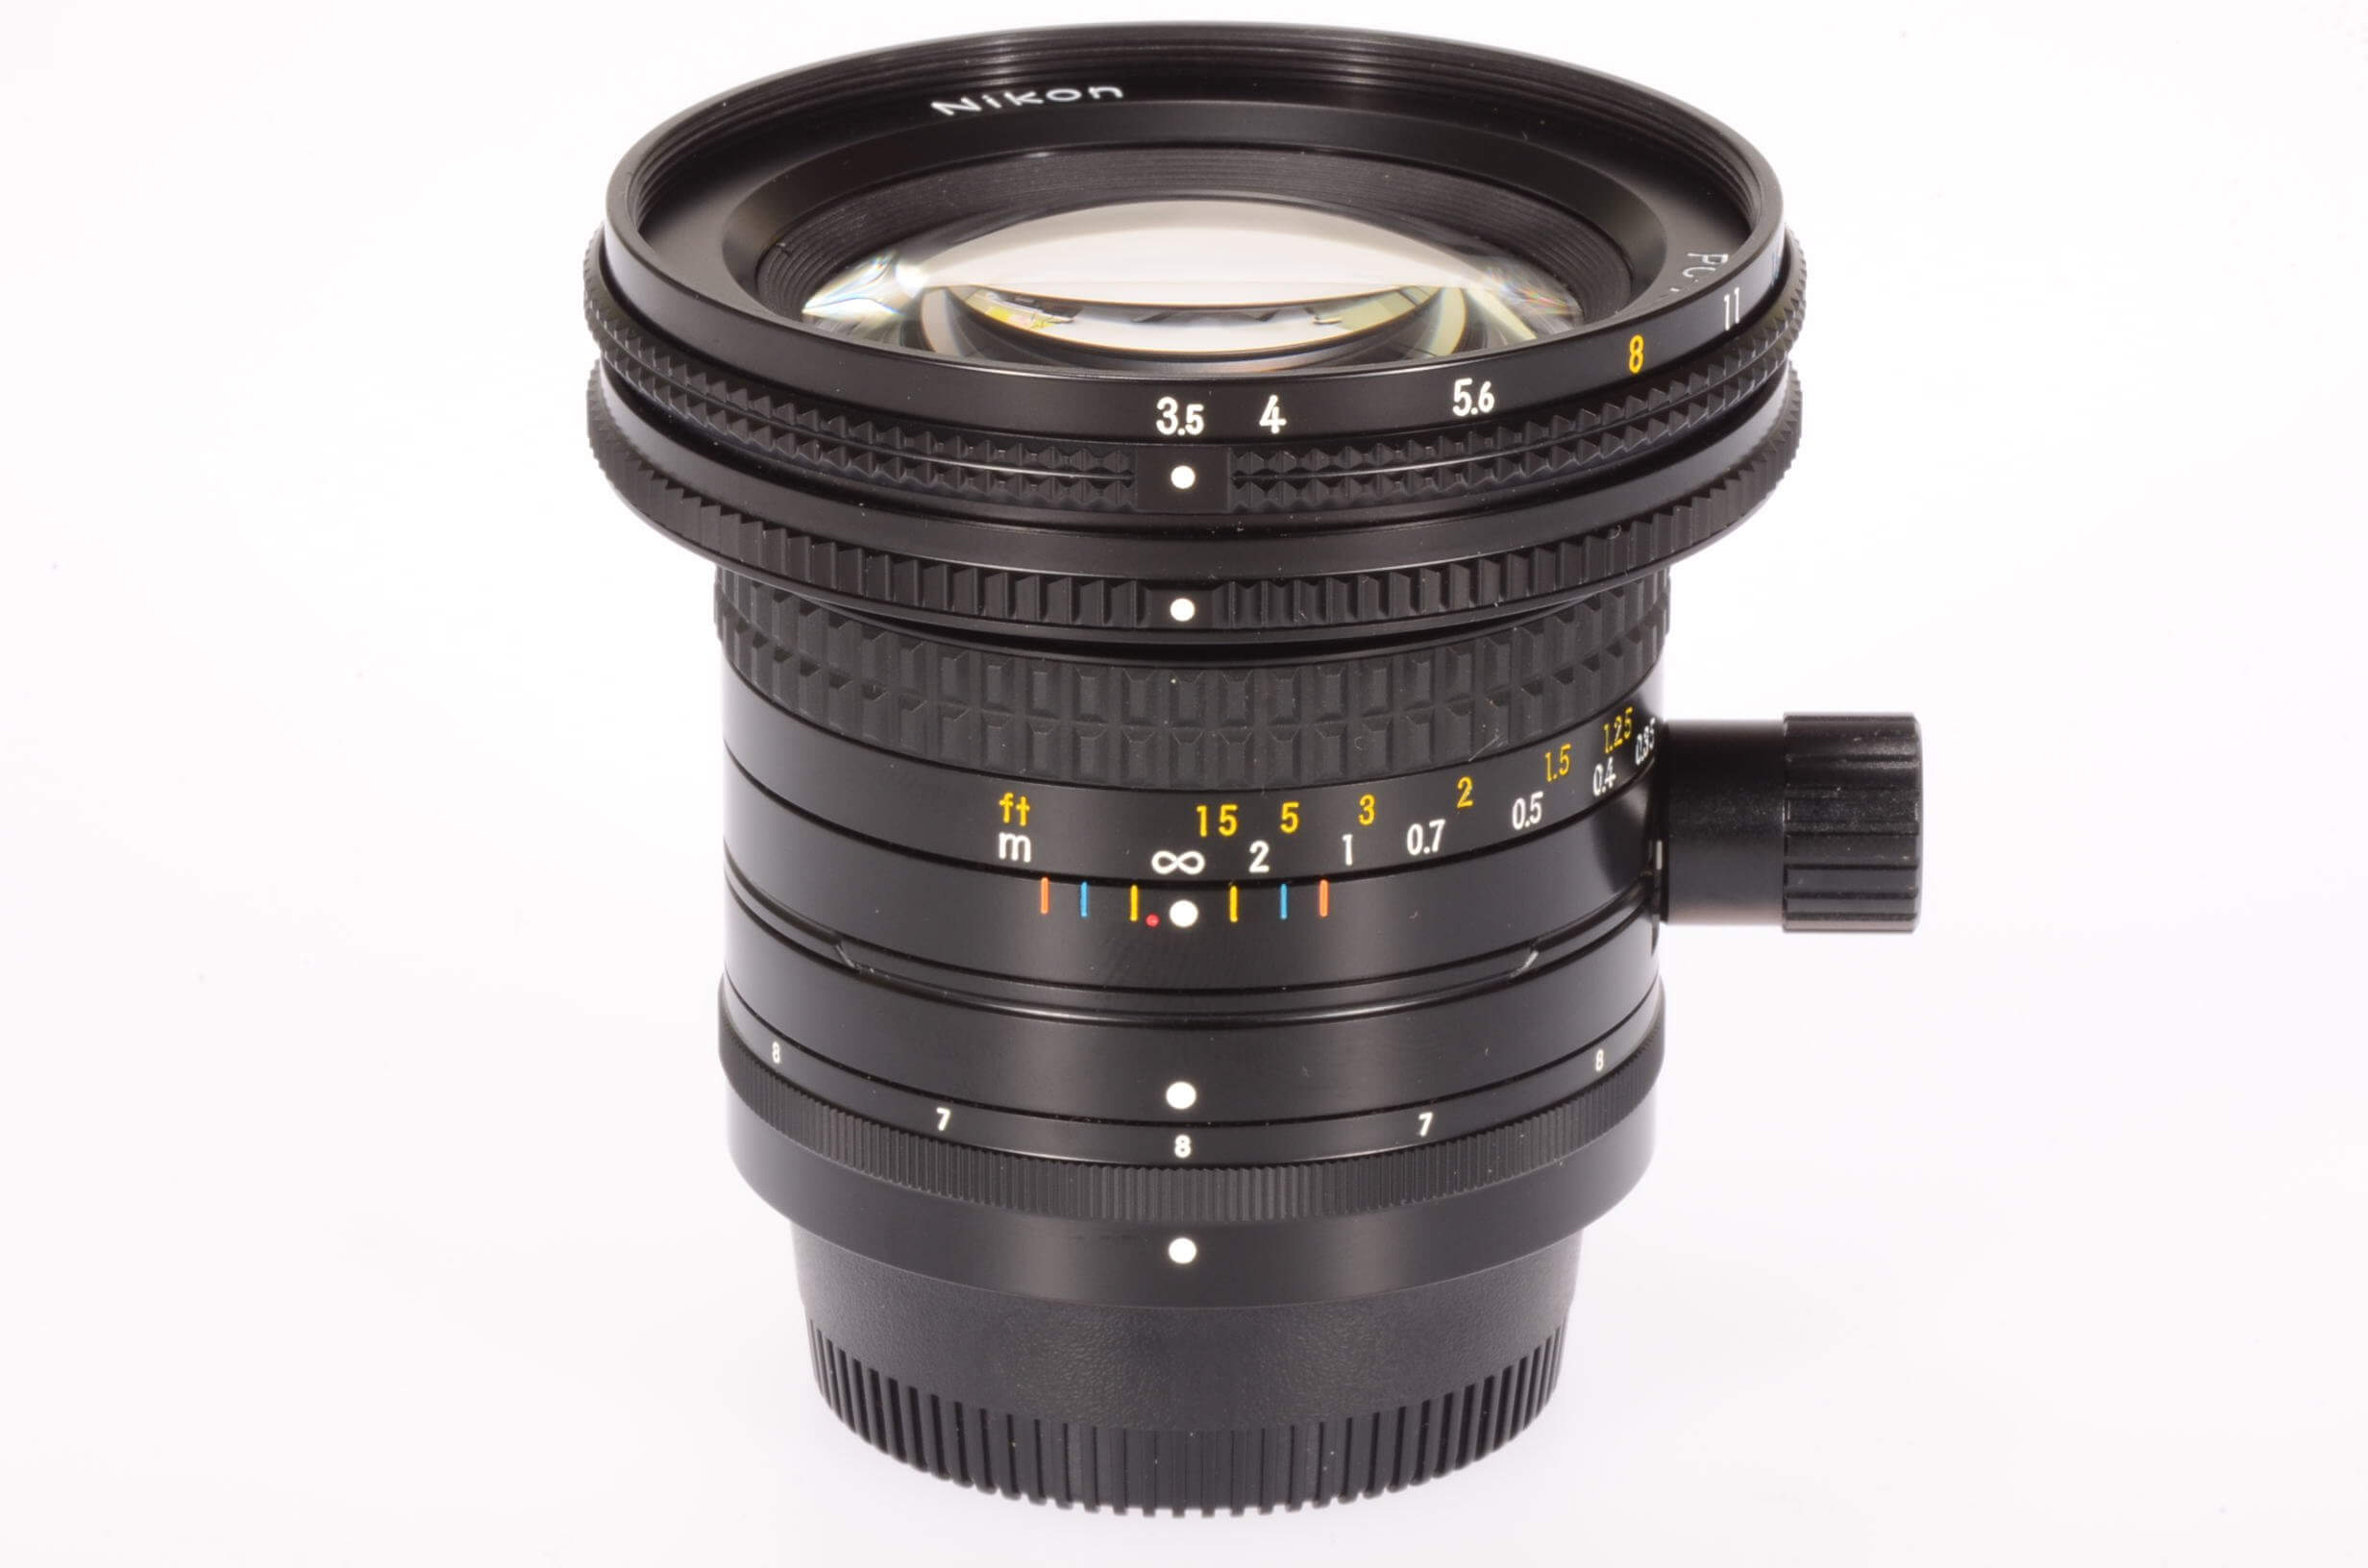 Nikon 28mm f3.5 PC Nikkor, gorgeous!